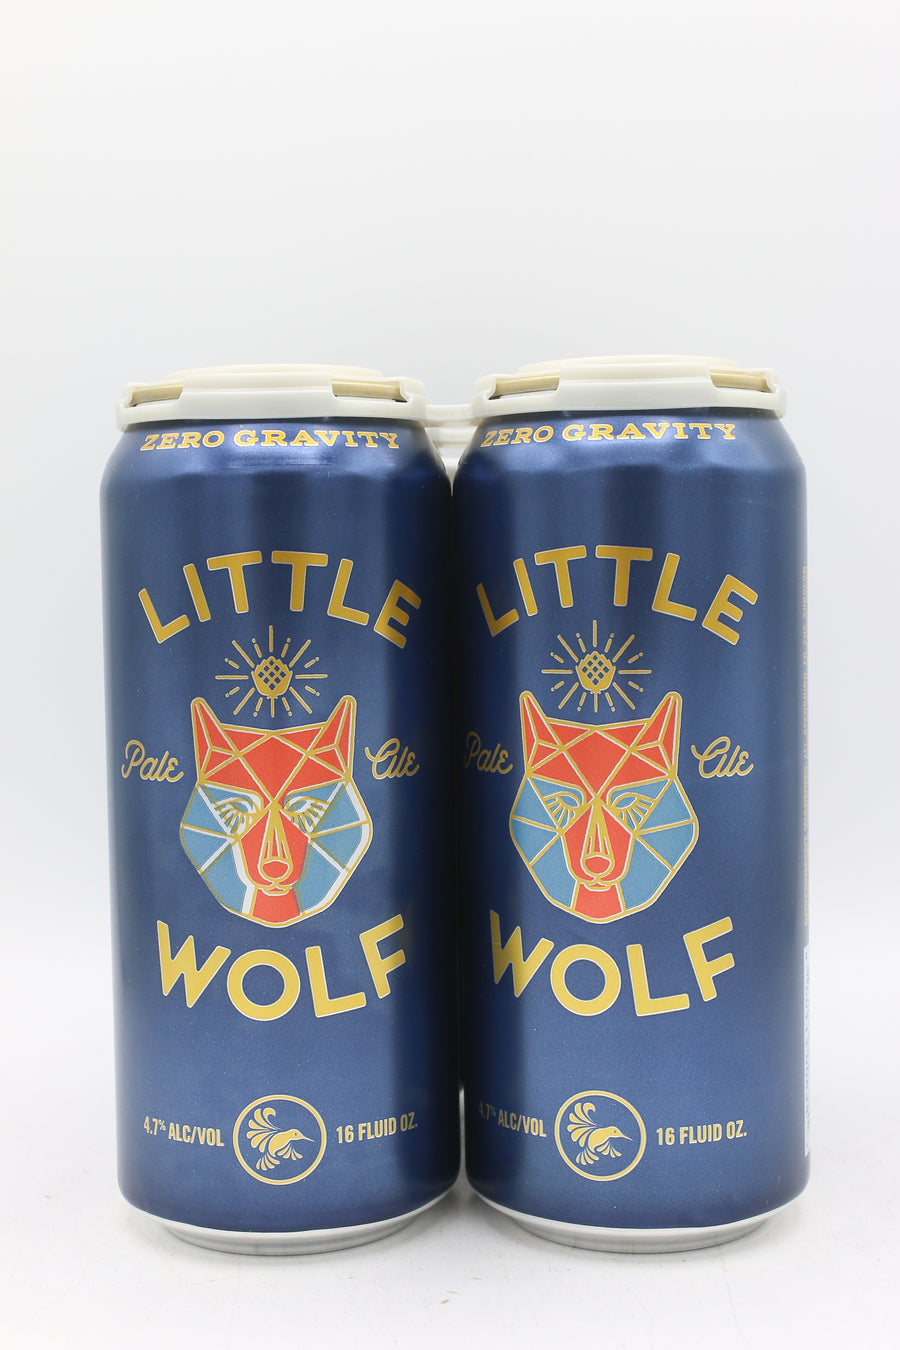 Zero Gravity Little Wolf 16oz 4pk